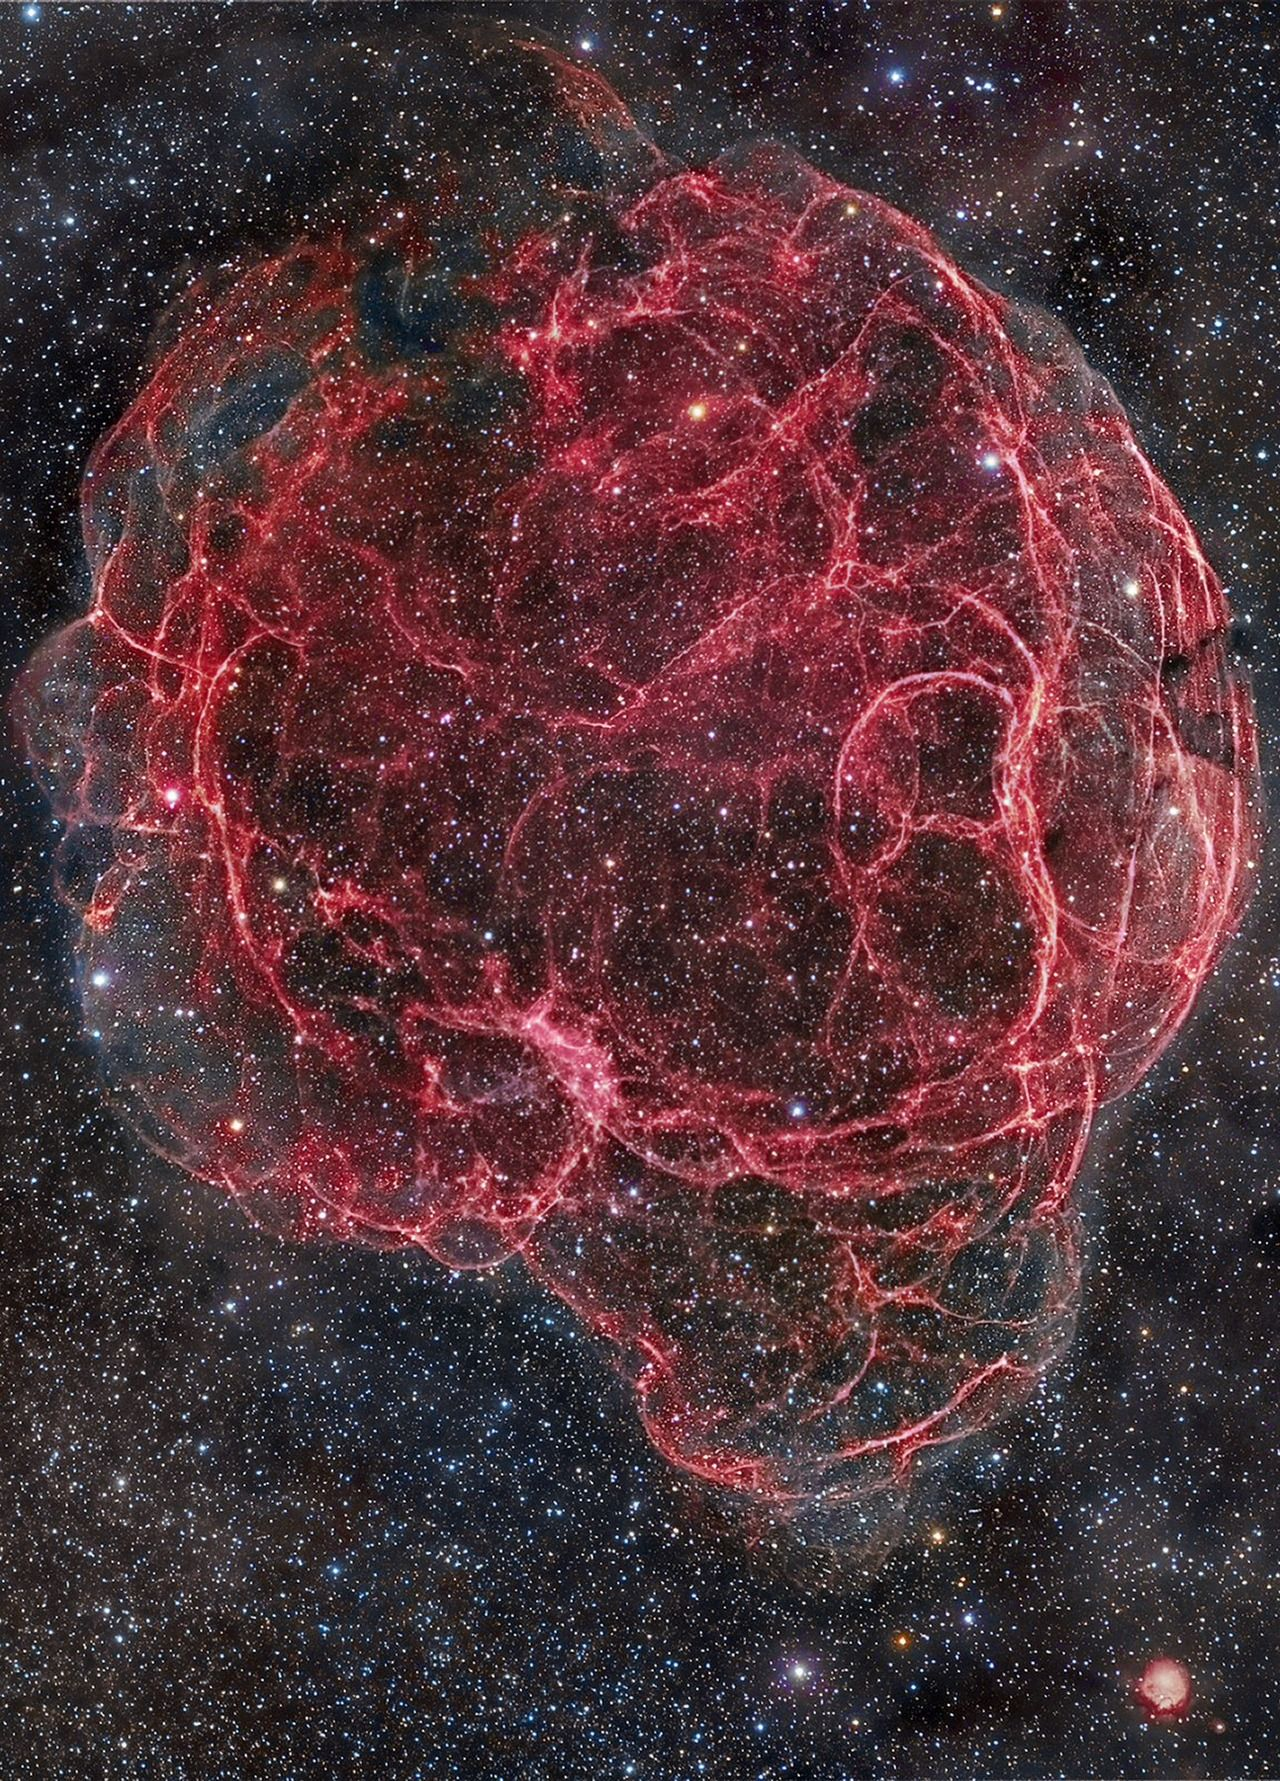 Simeis 147 (Spaghetti Nebula) is a large SN remnant in the constellations of Taurus & Auriga. It is the result of a SN explosion about 40,000 yrs ago. It is 3000 ly away & about 140 ly across